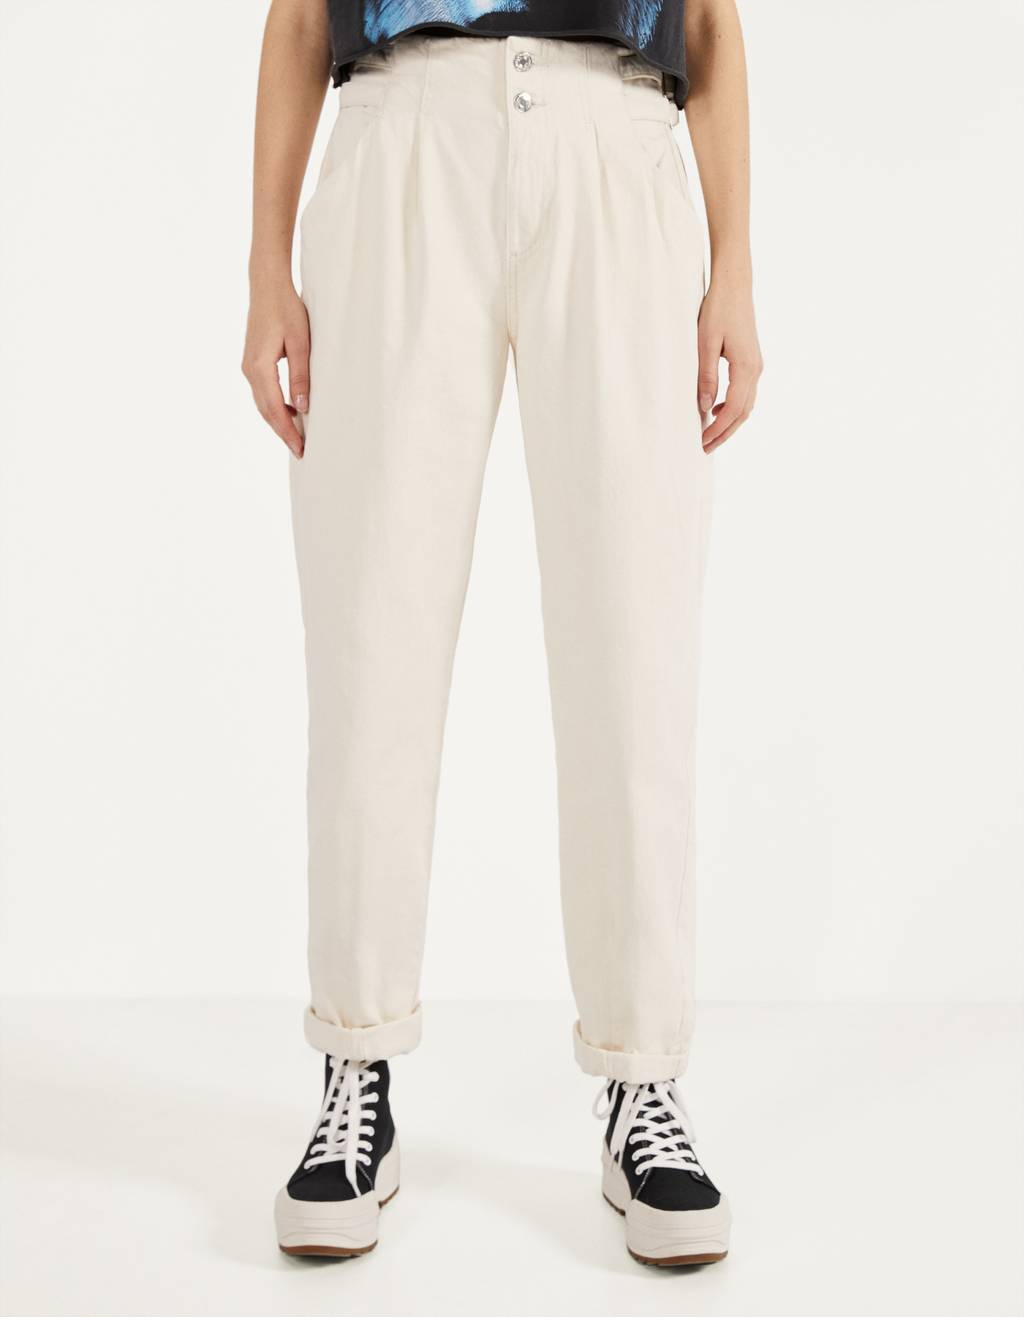 High waist trousers with belt loops